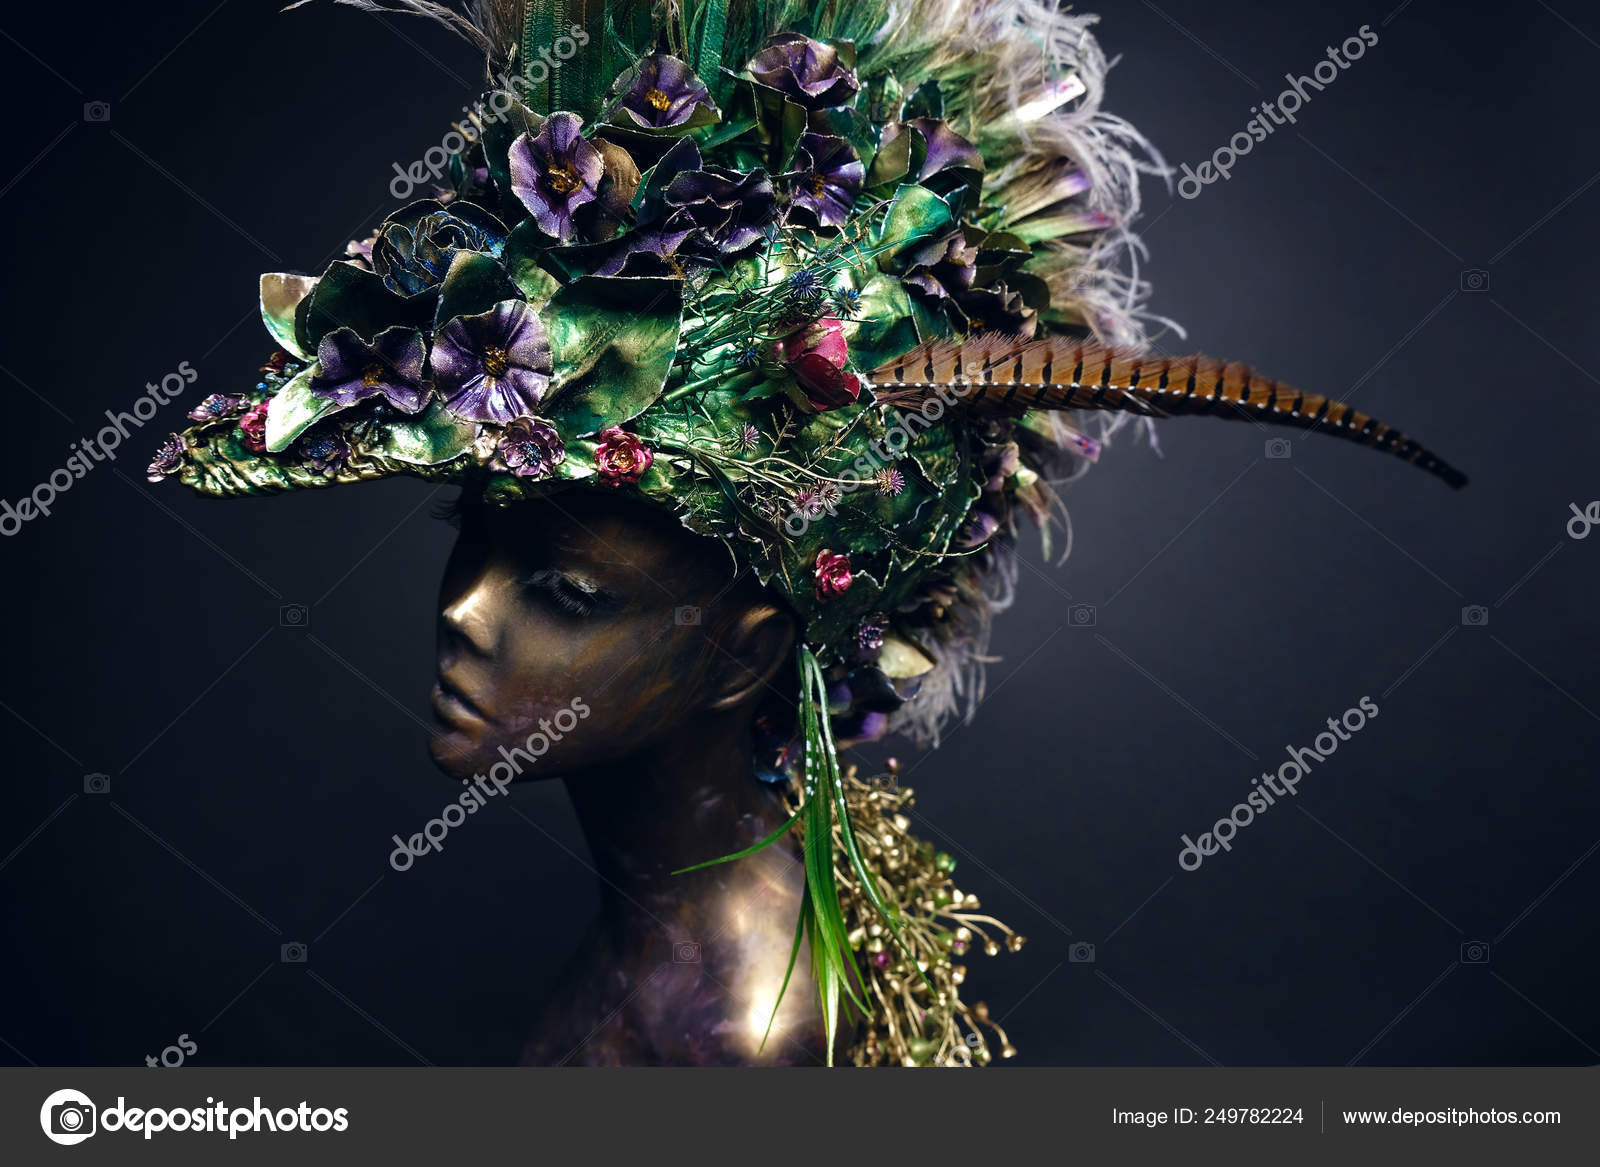 Studio shot of woman mannequin in creative headdress with flowers and leaves, dark studio background